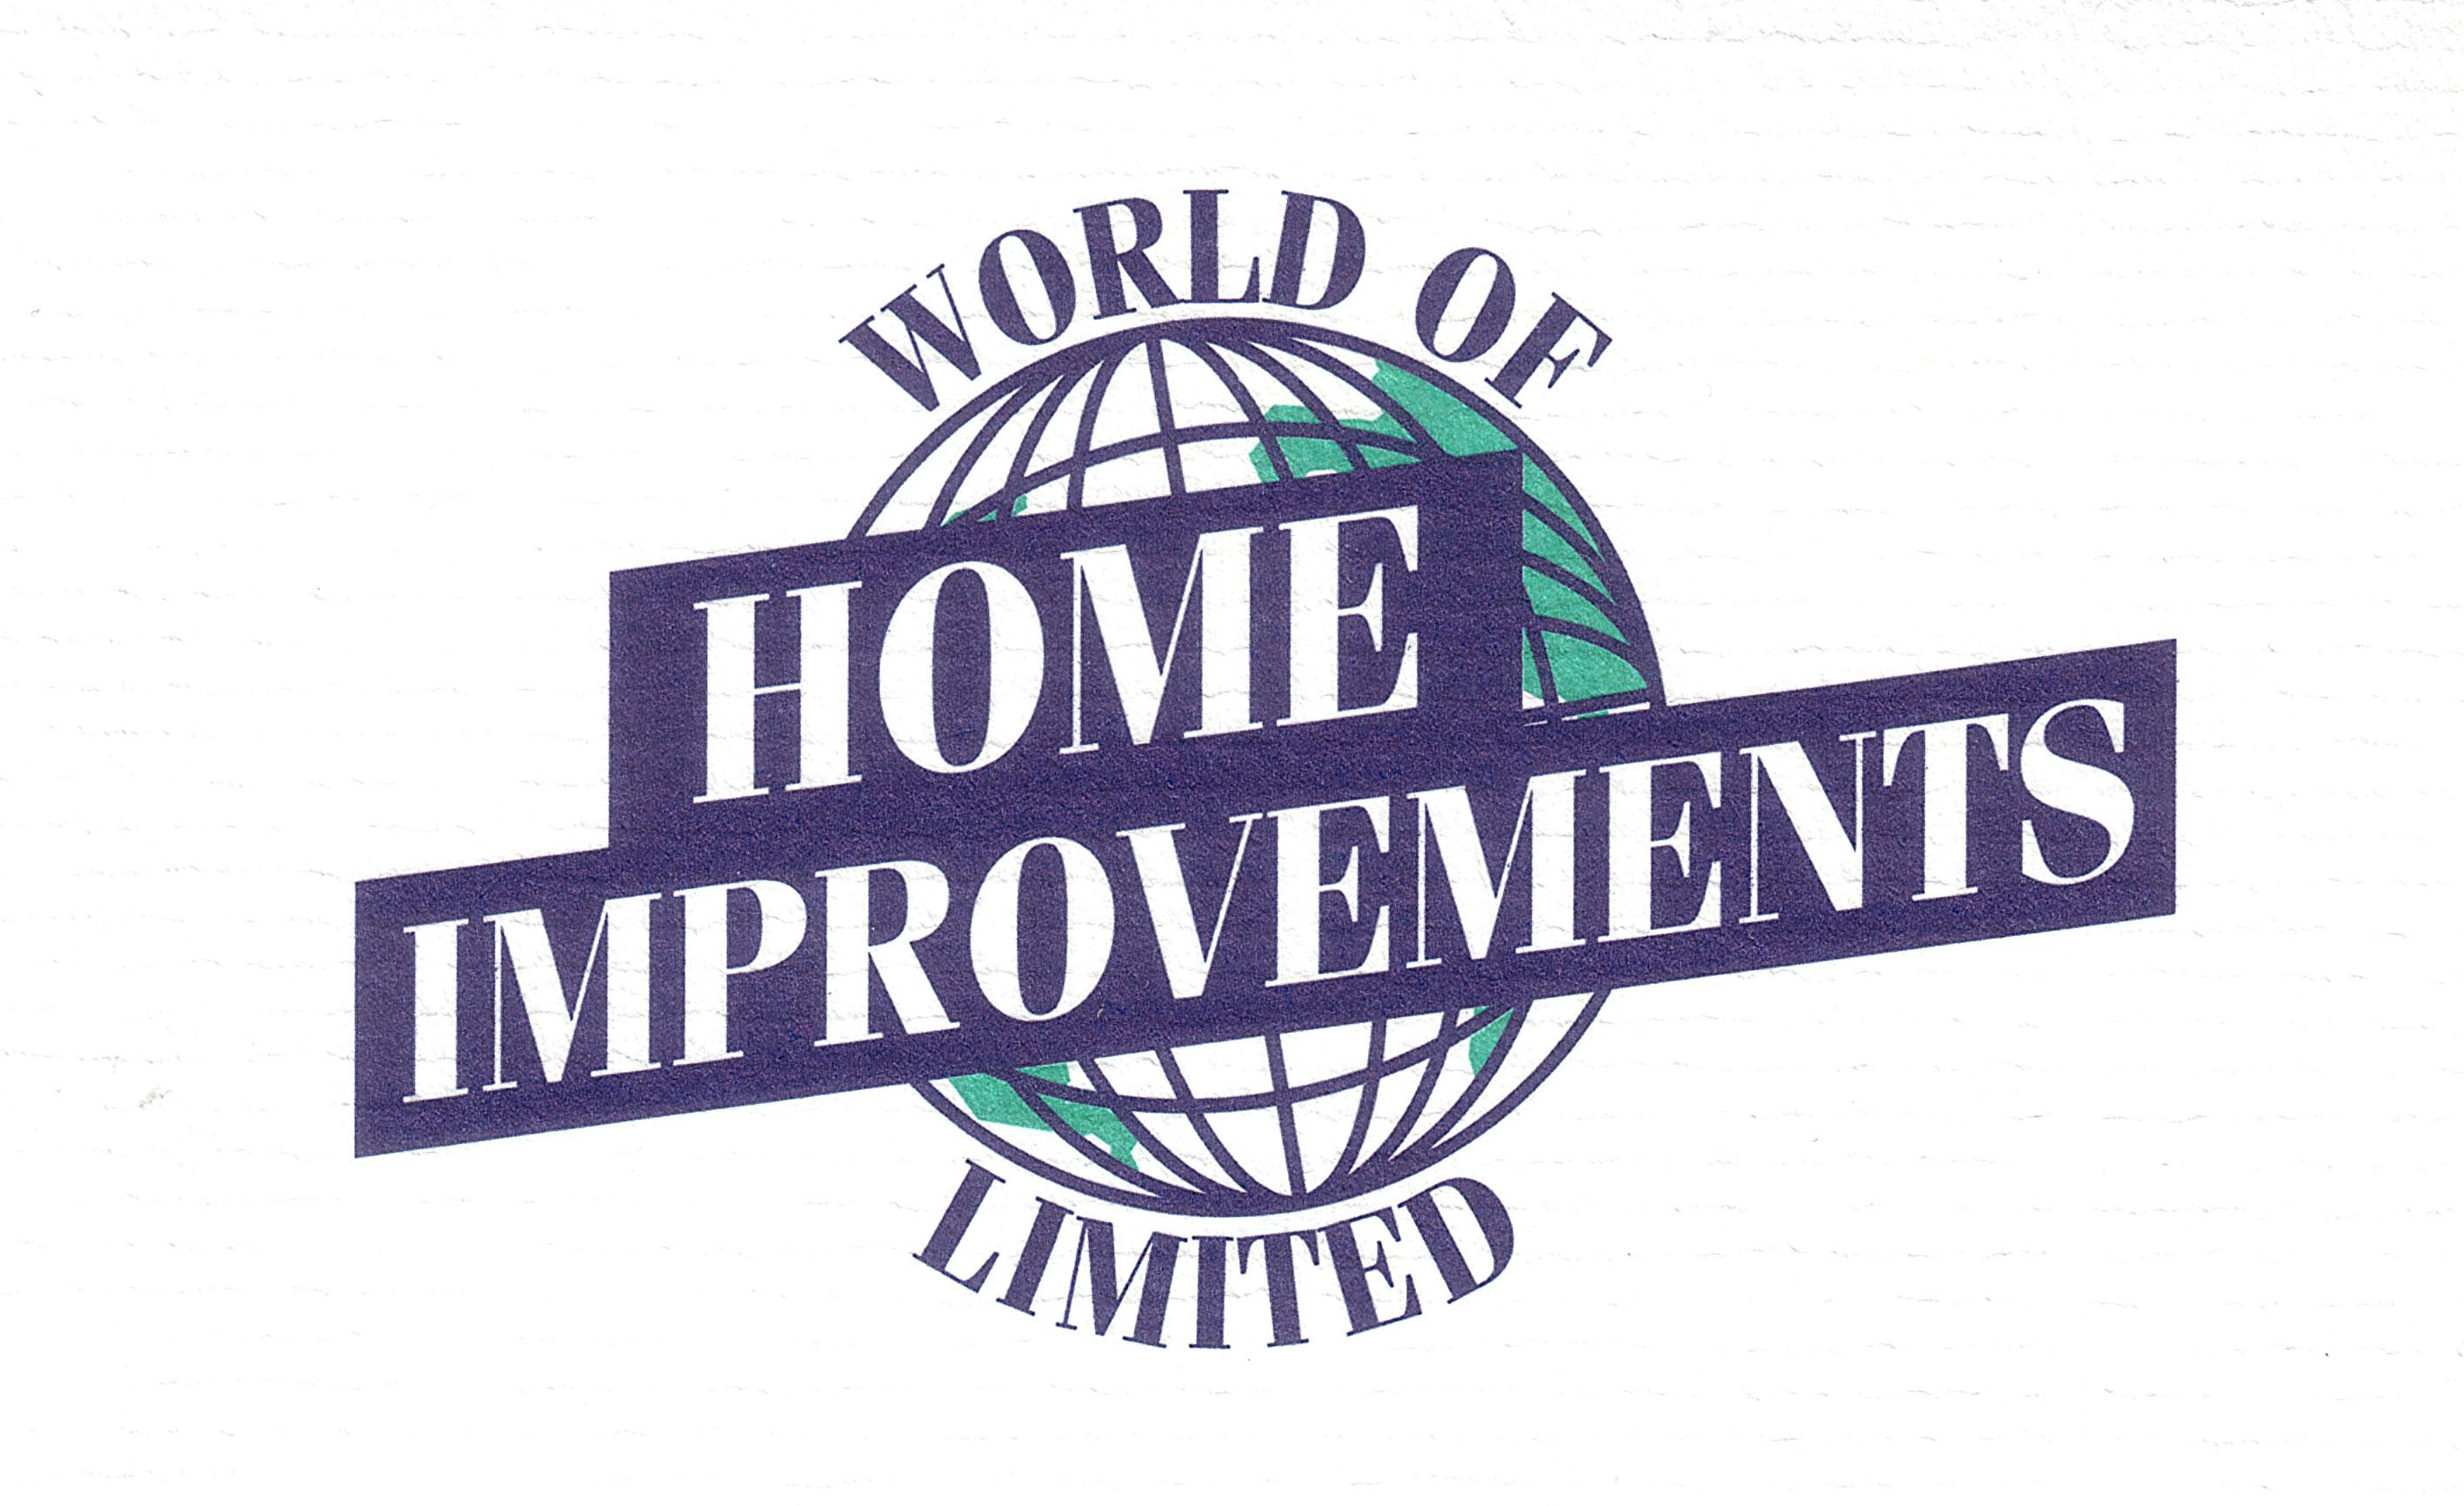 World of Home improvements Ltd